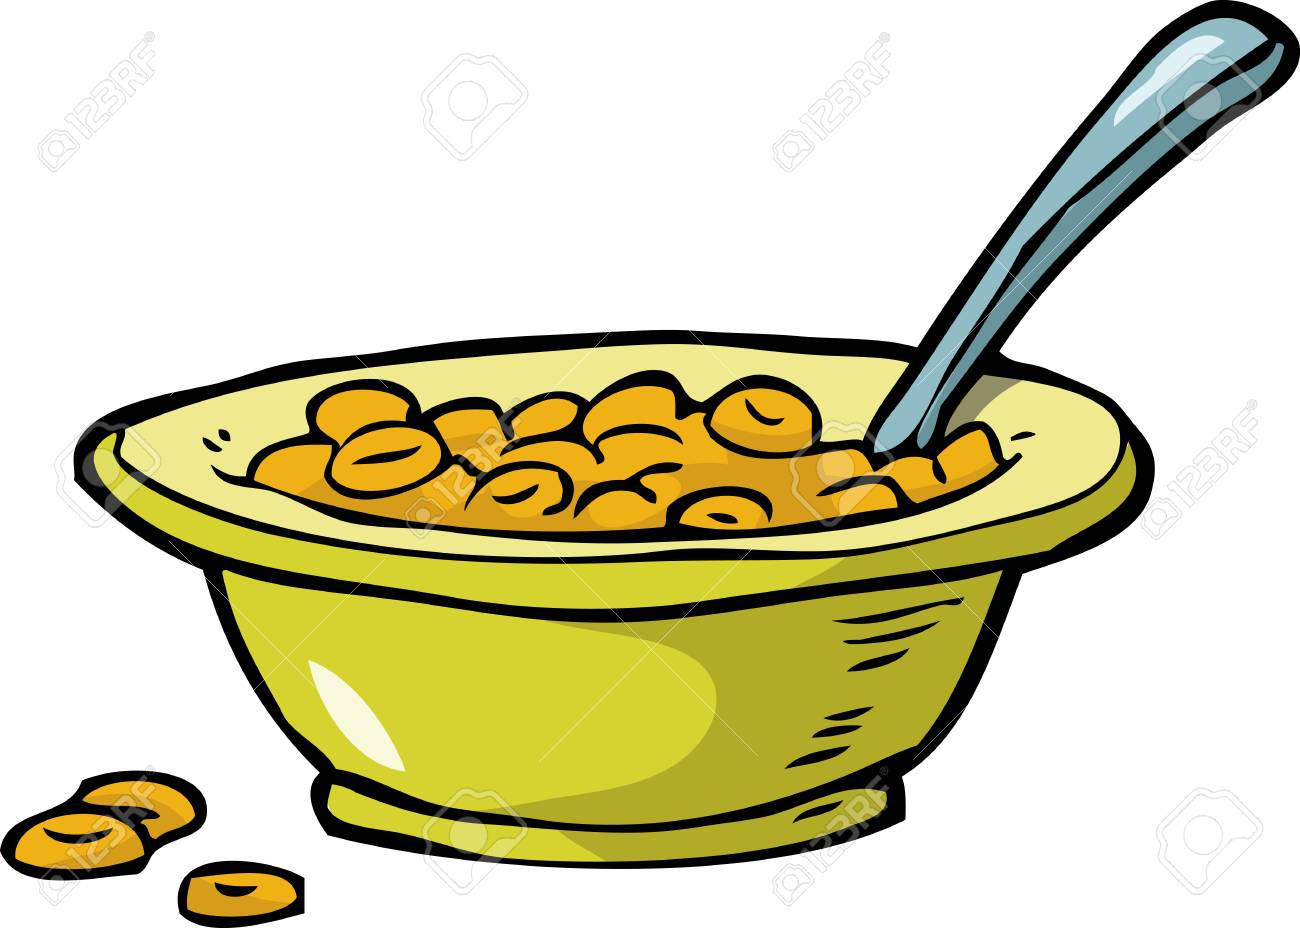 Plate of cereal on a white background vector illustration - 98871767